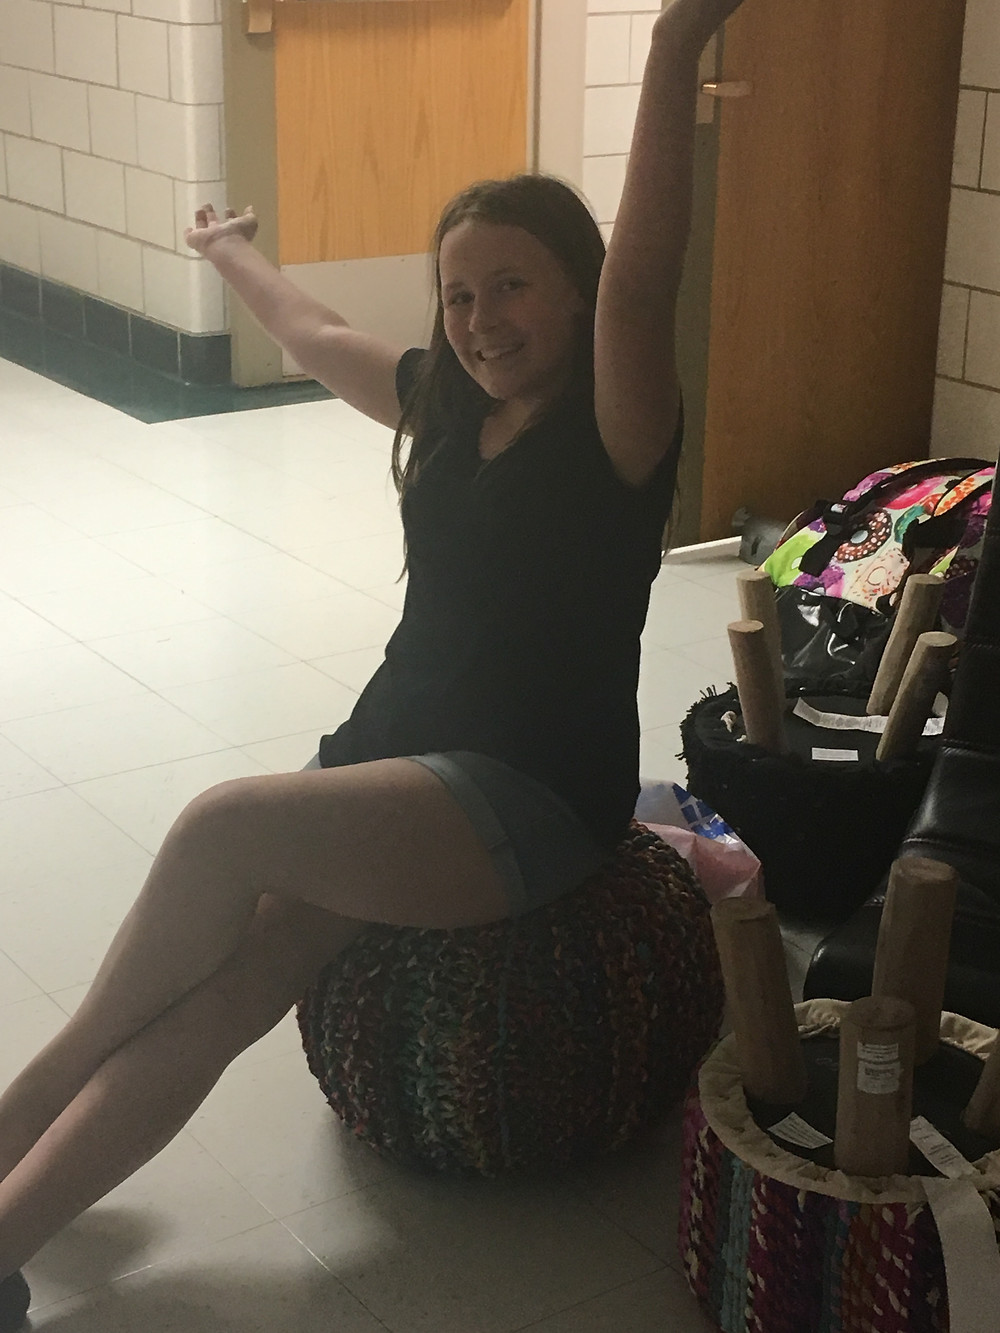 Zoey helping me bring in stuff for my flexible classroom